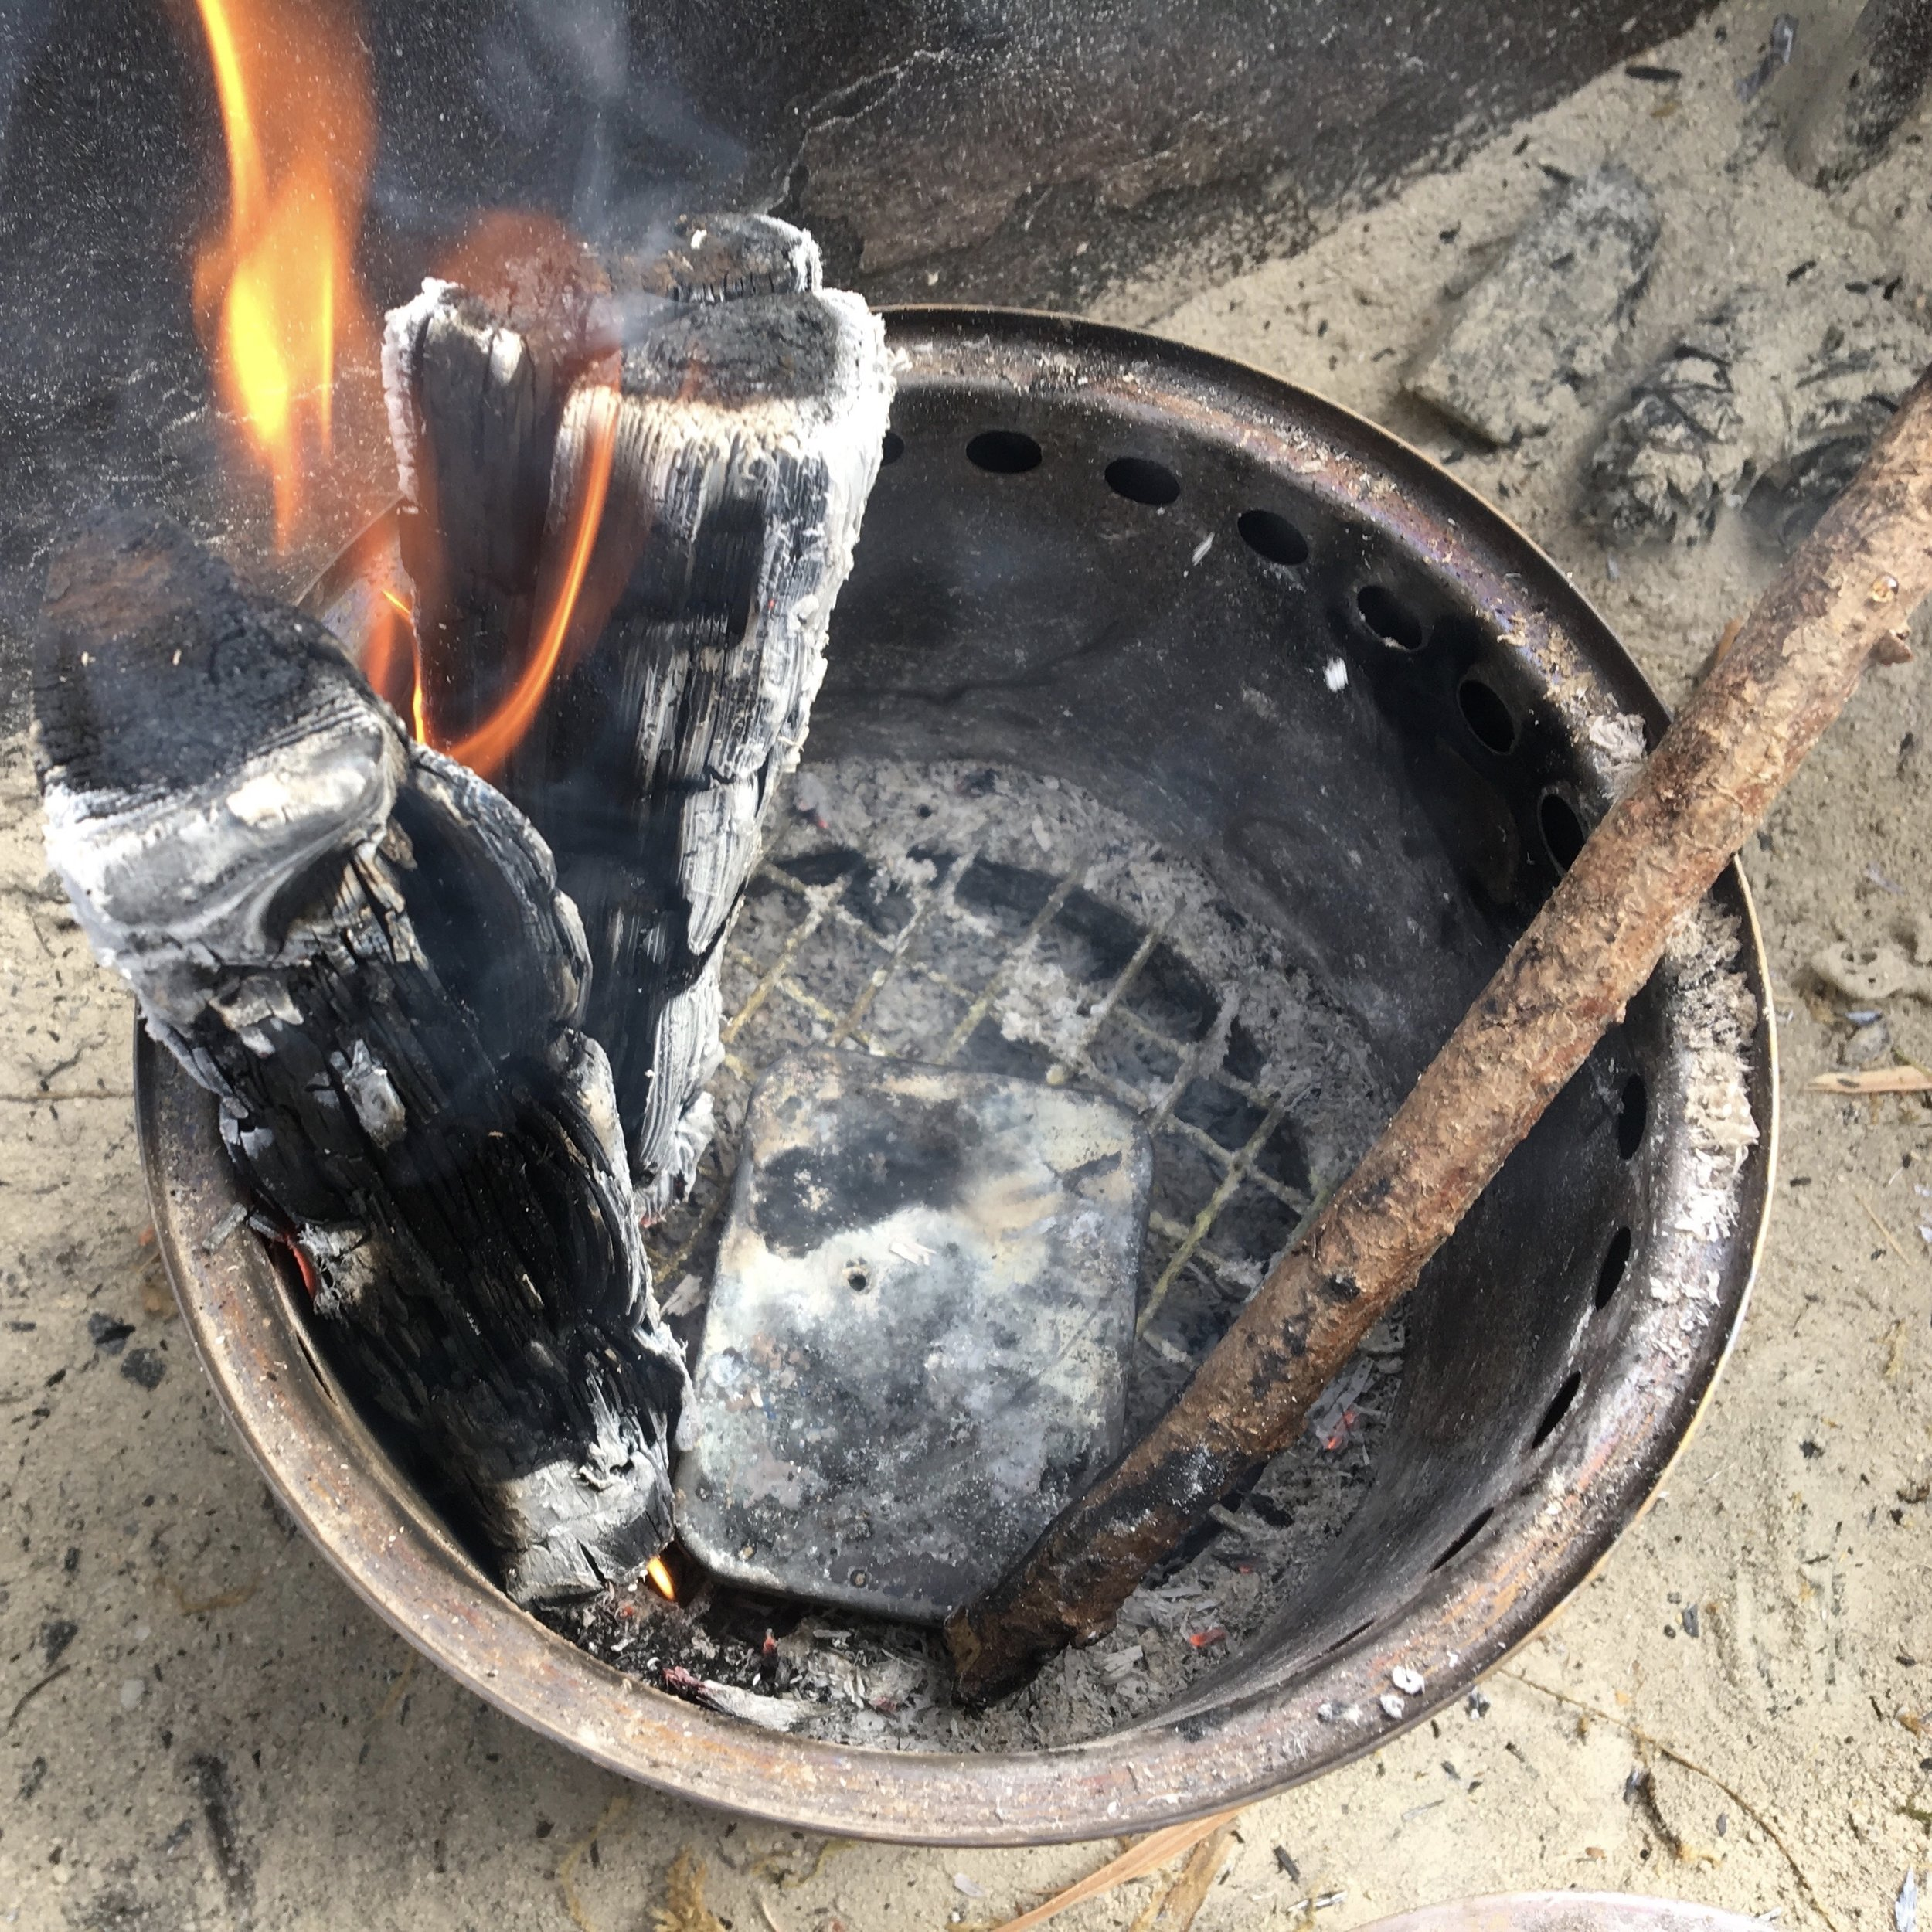 Cooking Char Cloth in a fire can